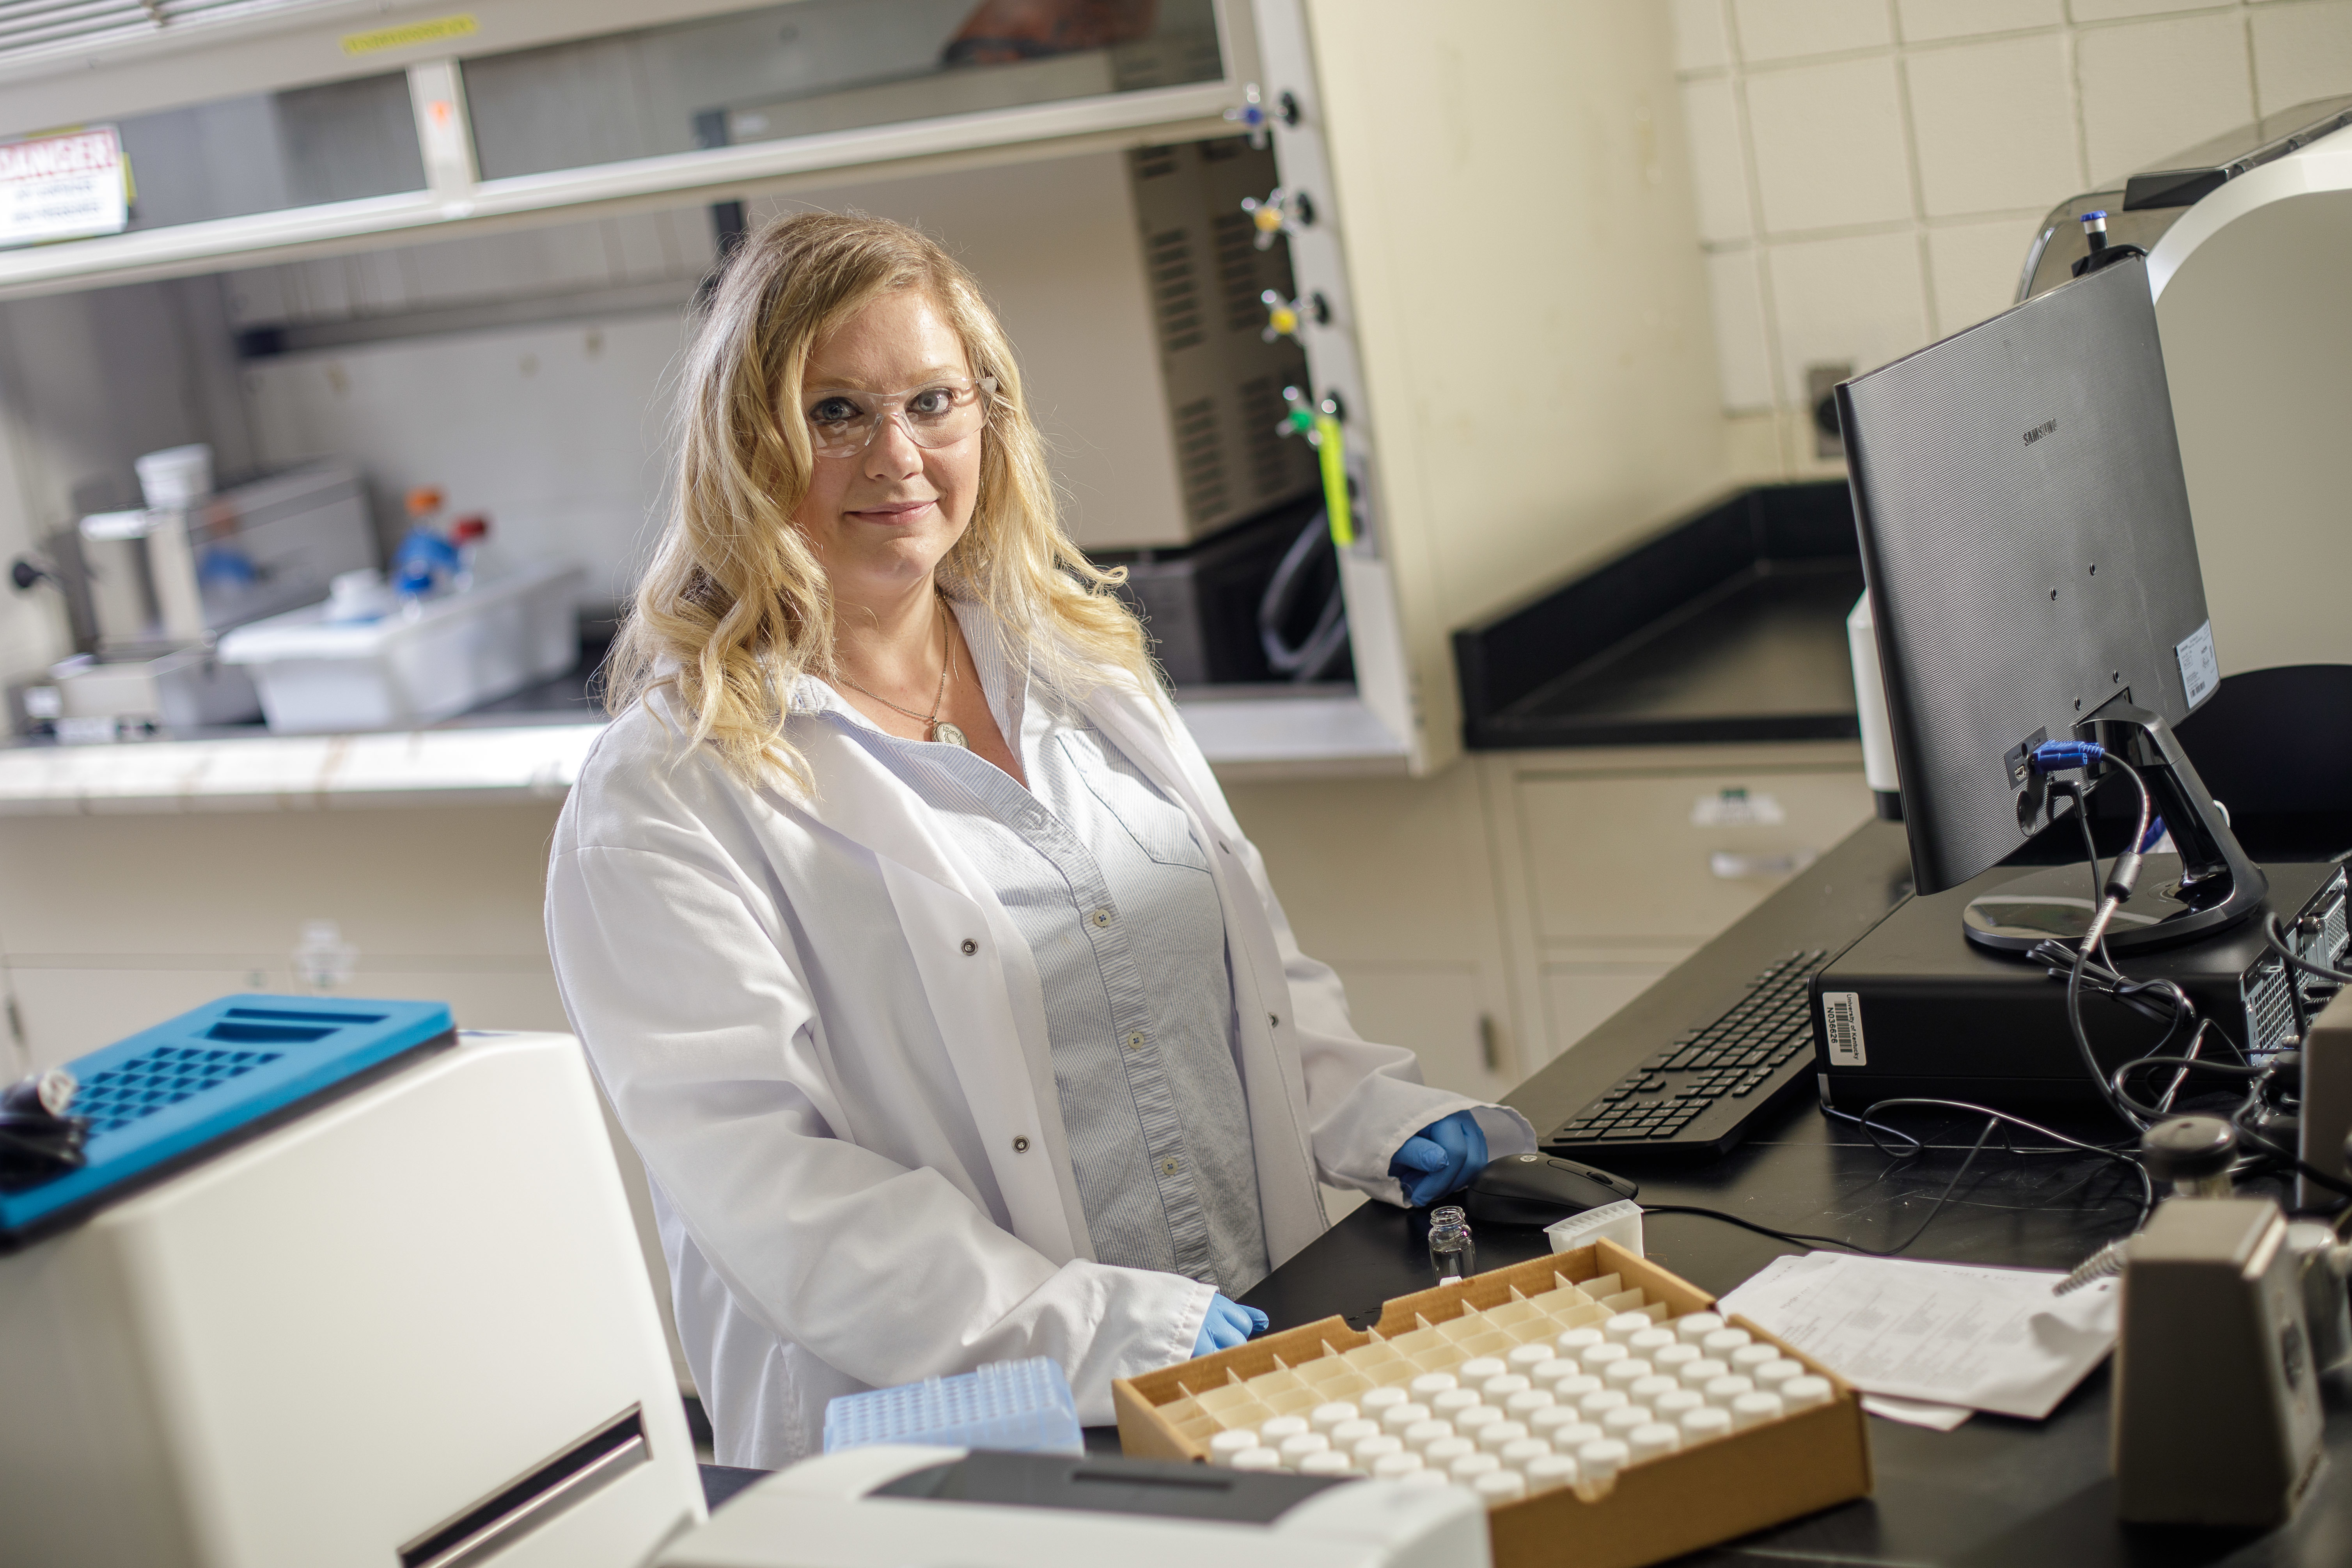 Messer studying low-cost water treatment options with prestigious NSF award